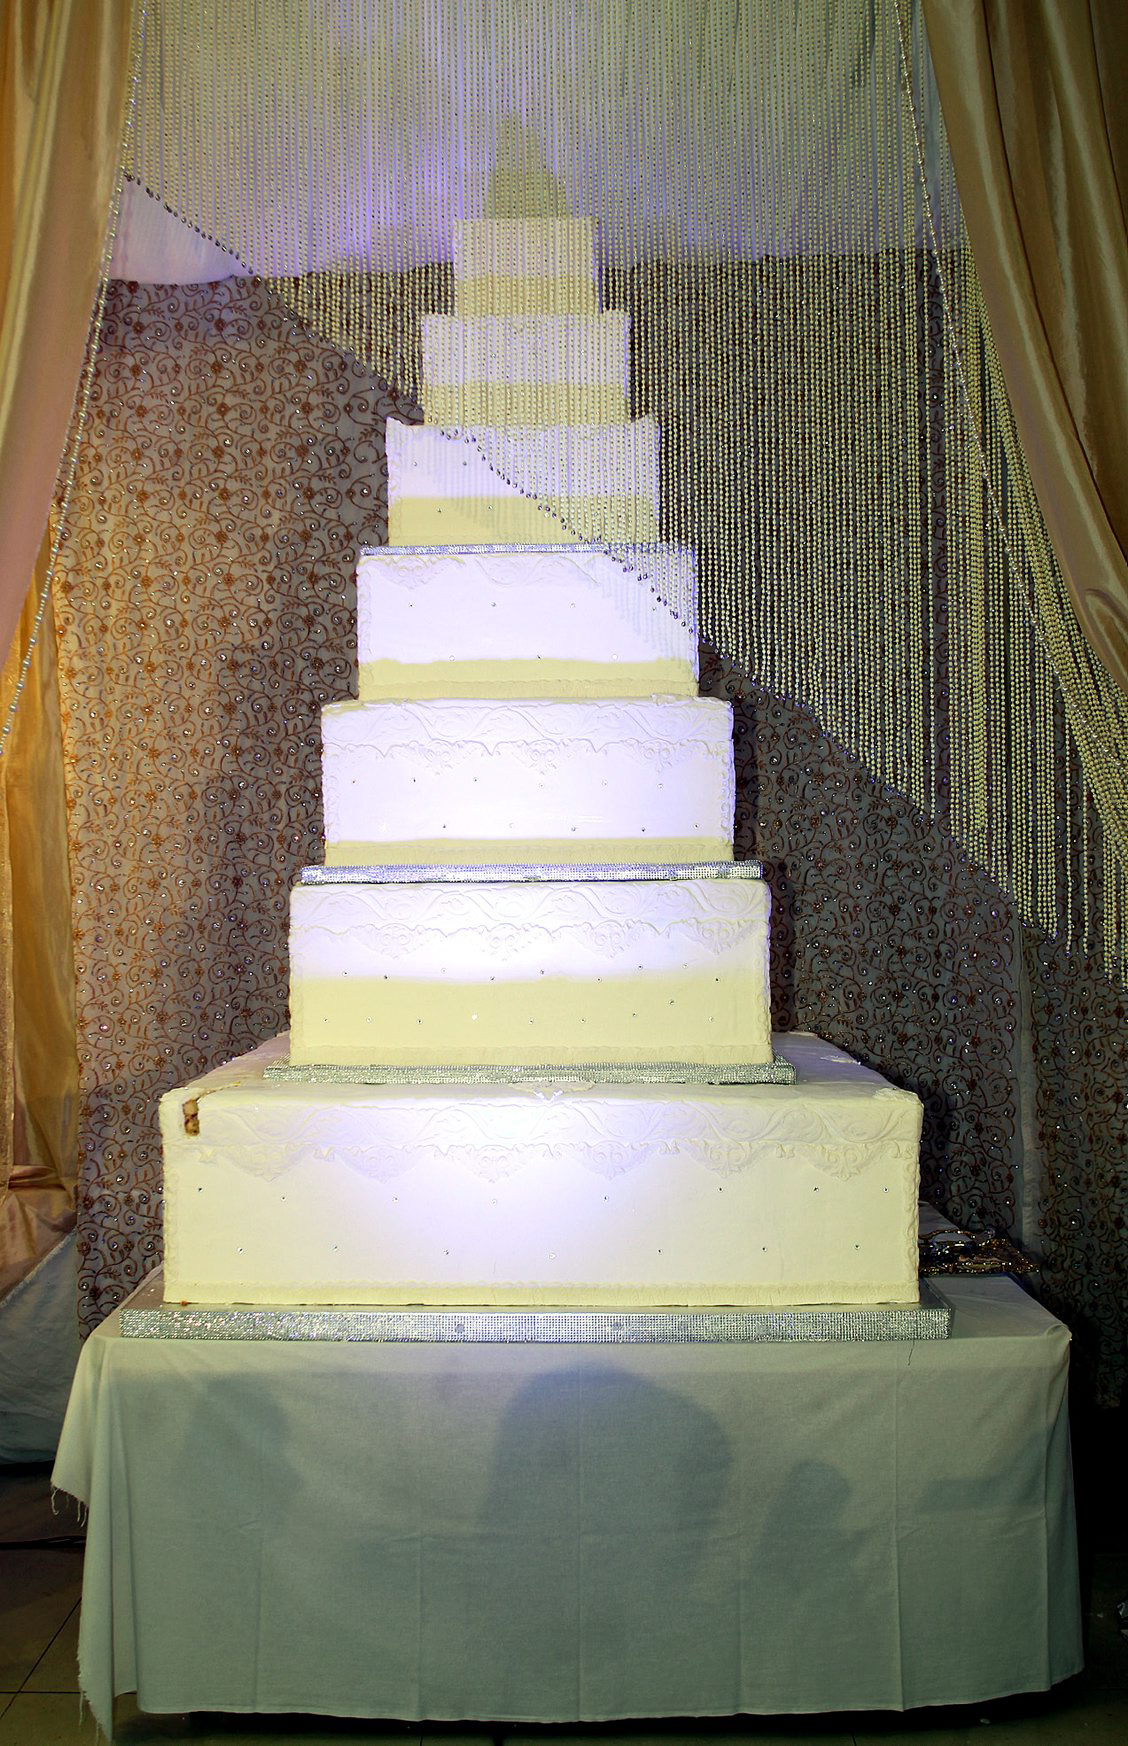 Wedding cake to feed 5,000 given to charity